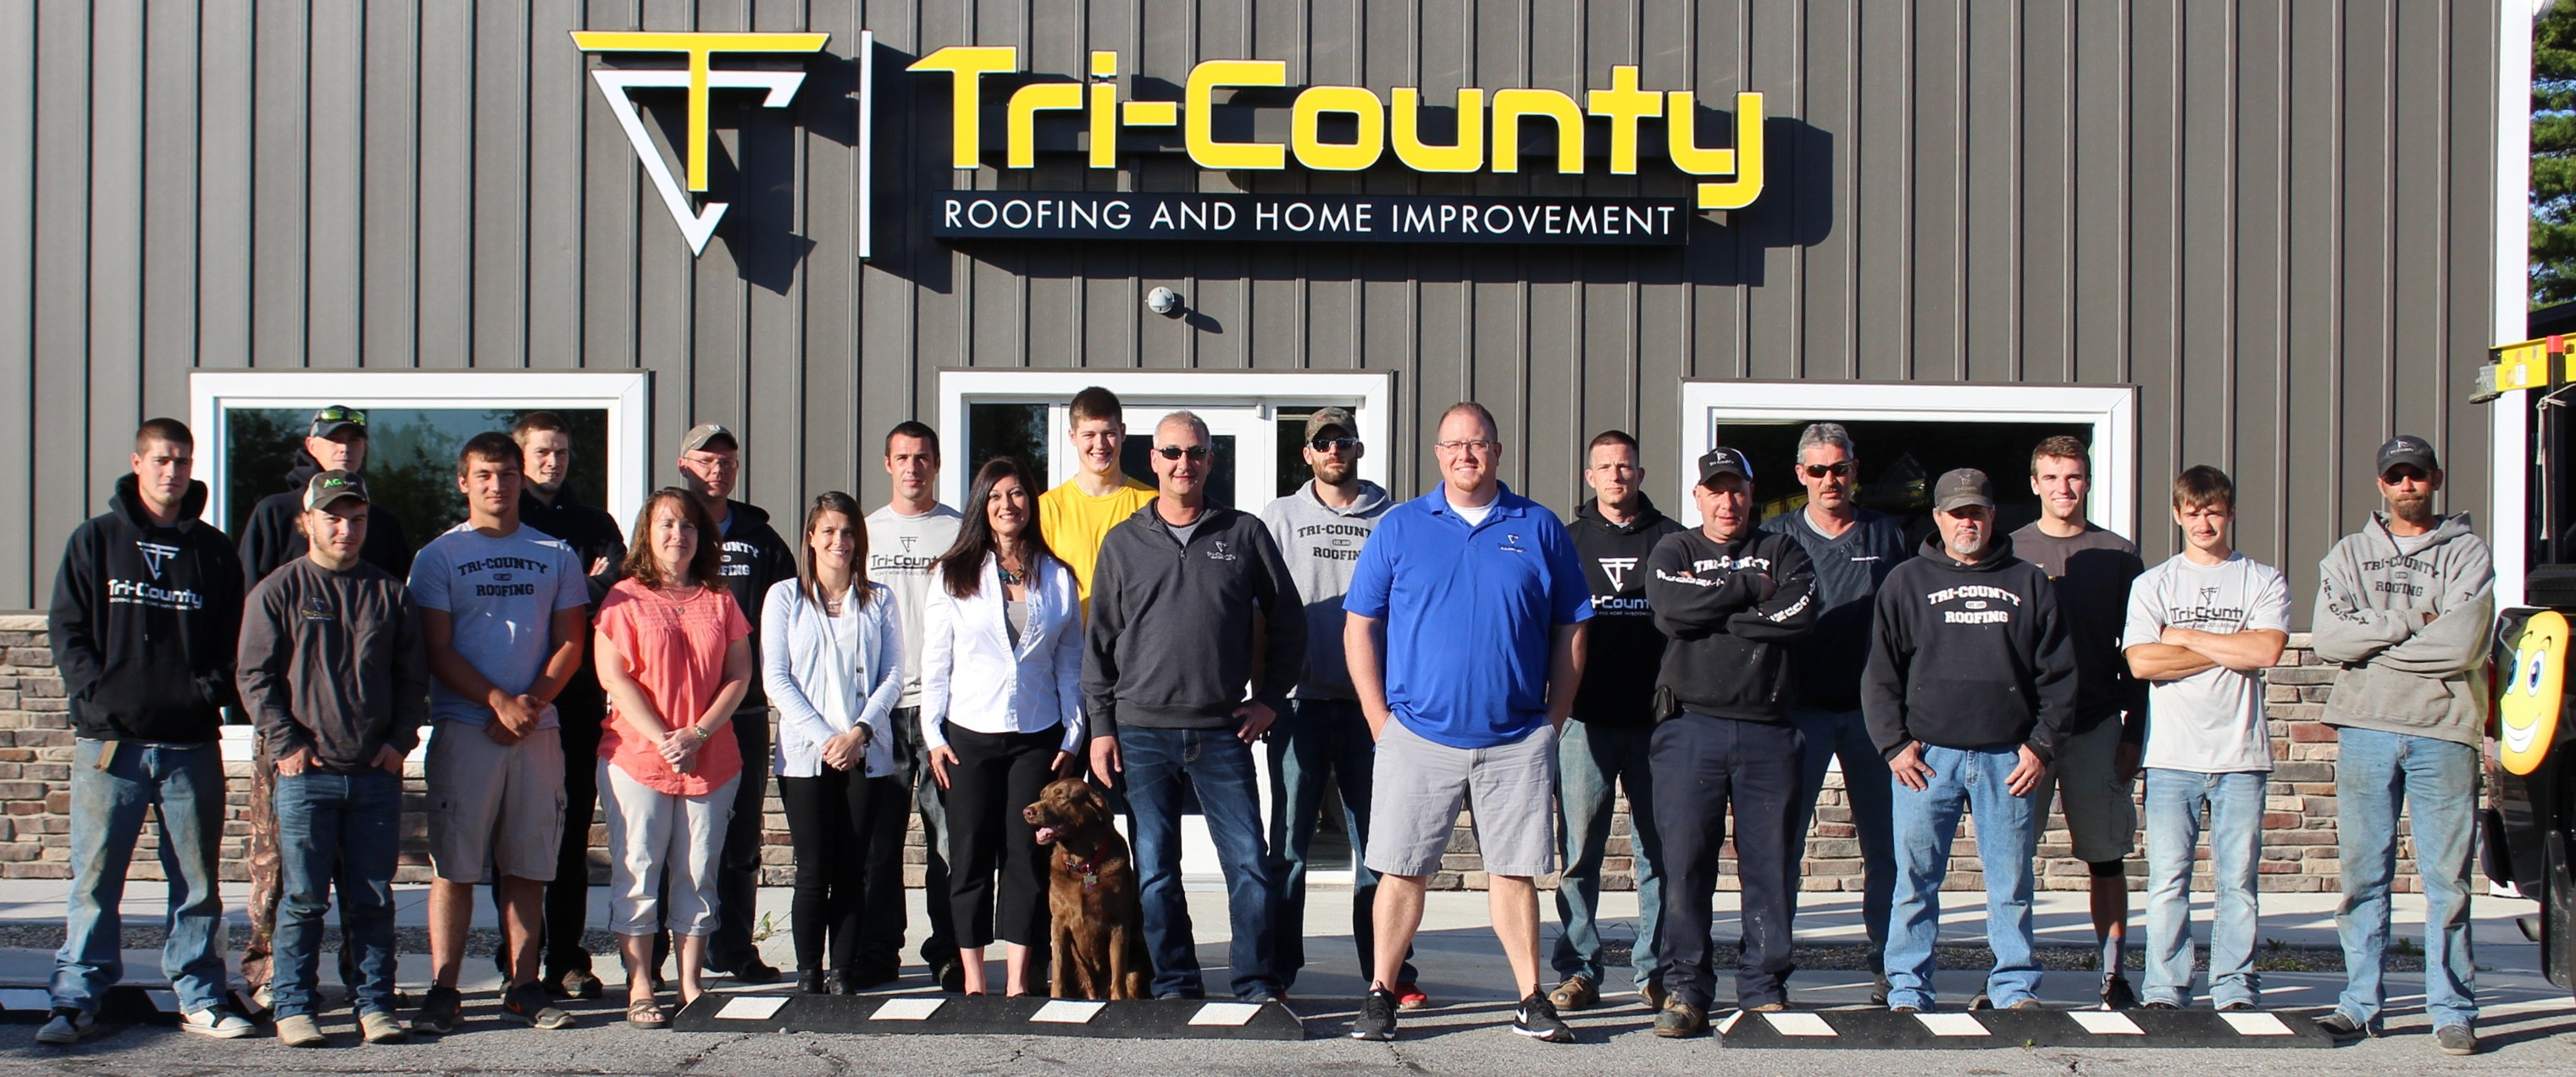 Tri-County - Roofing | Home Improvement | Remodeling